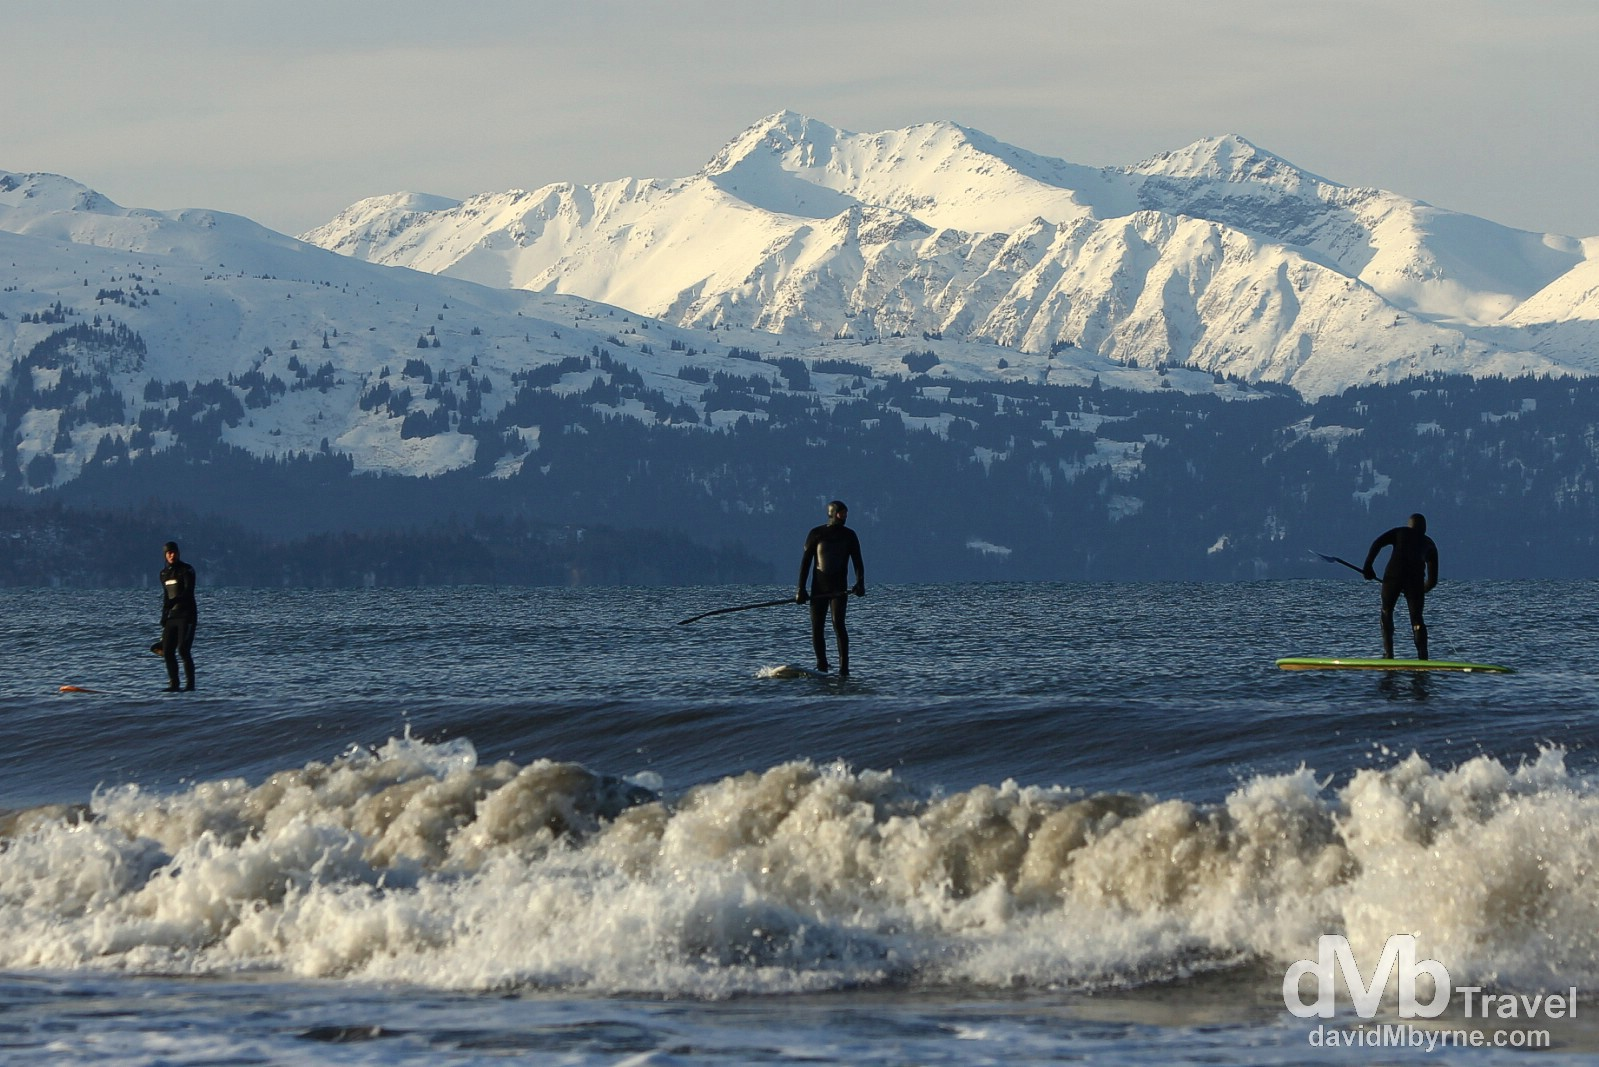 Paddle boarding off the Spit in Homer, Kenai Peninsula, Alaska, USA. March 18th 2103.